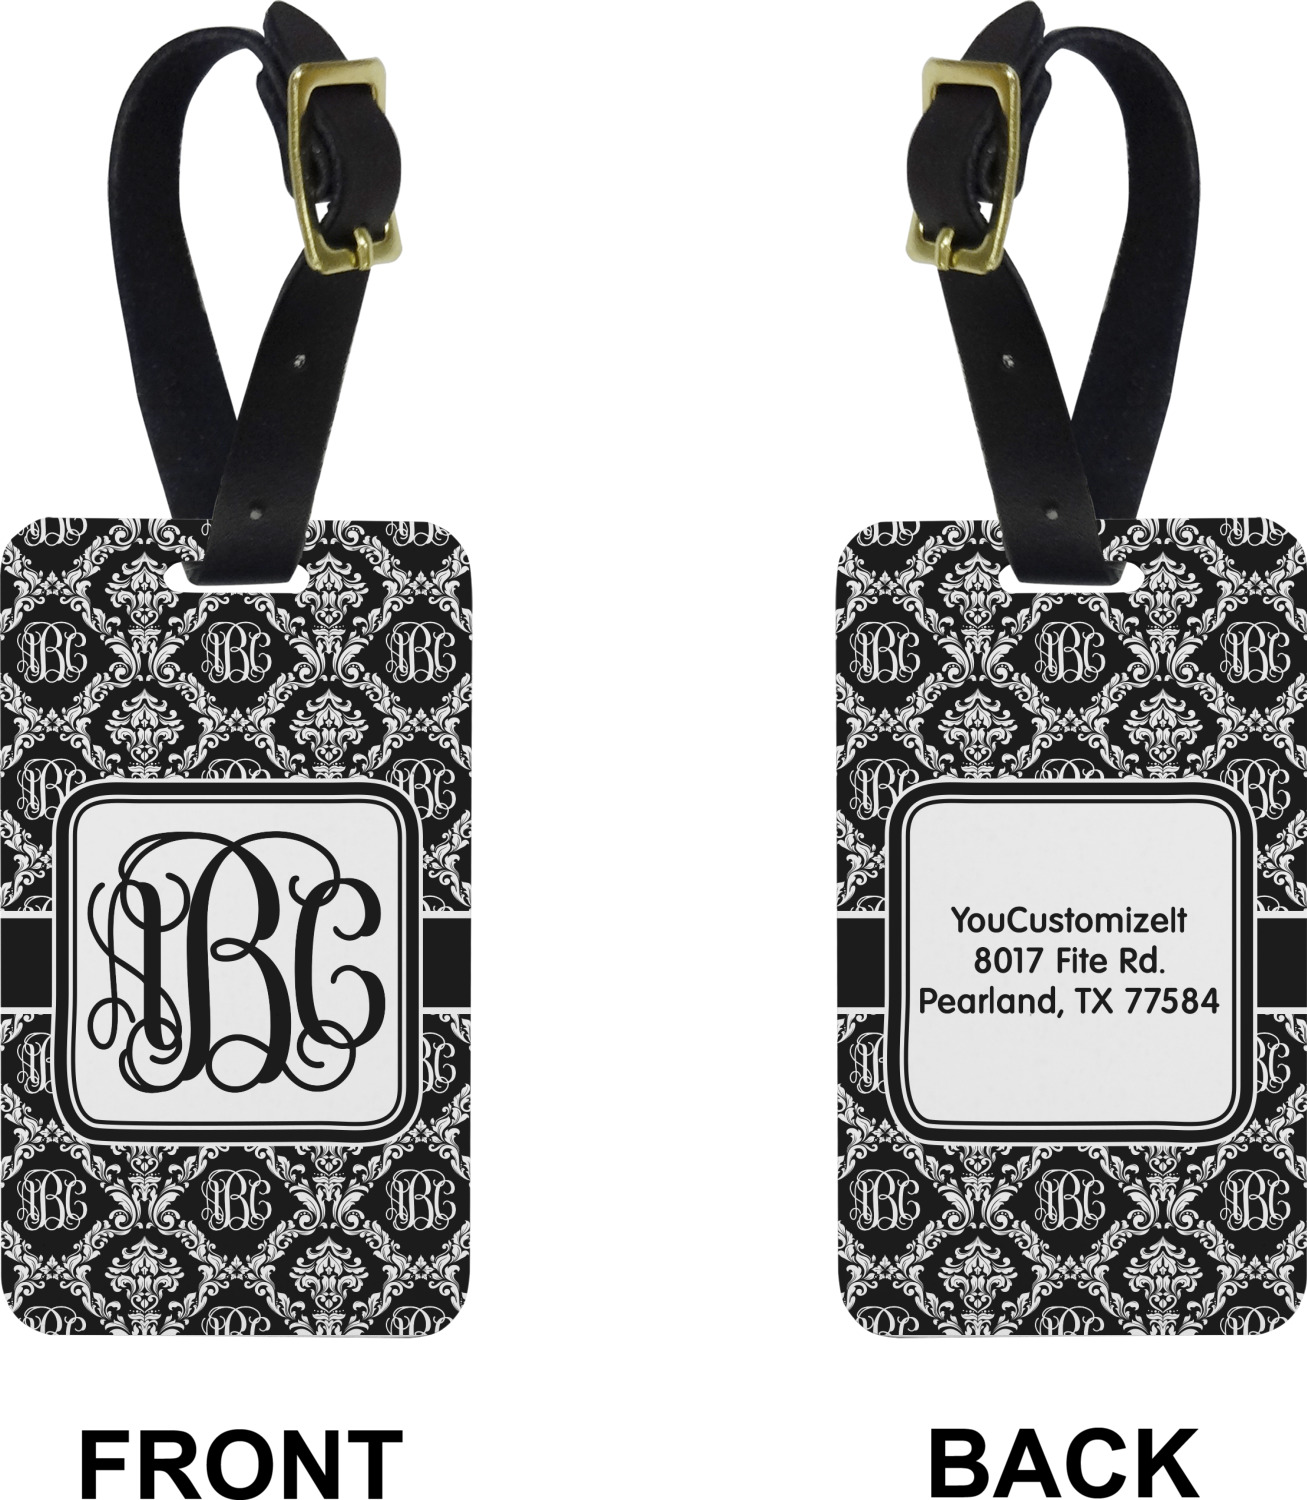 YouCustomizeIt Monogrammed Damask Duffel Bag Personalized